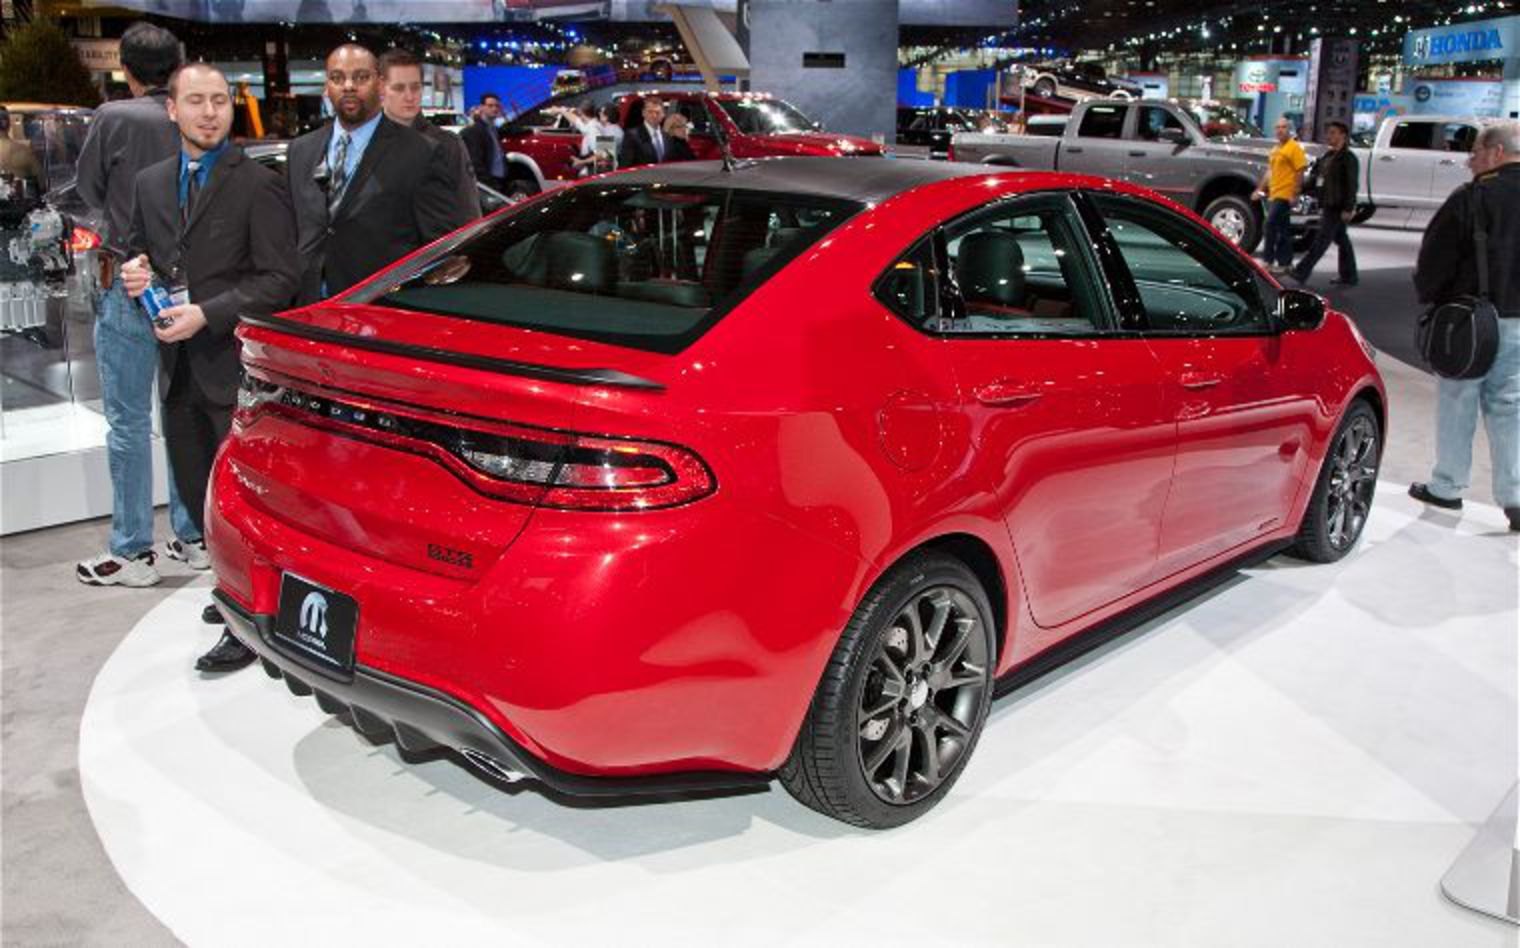 First Look: 2013 Dodge Dart GTS 210 Tribute